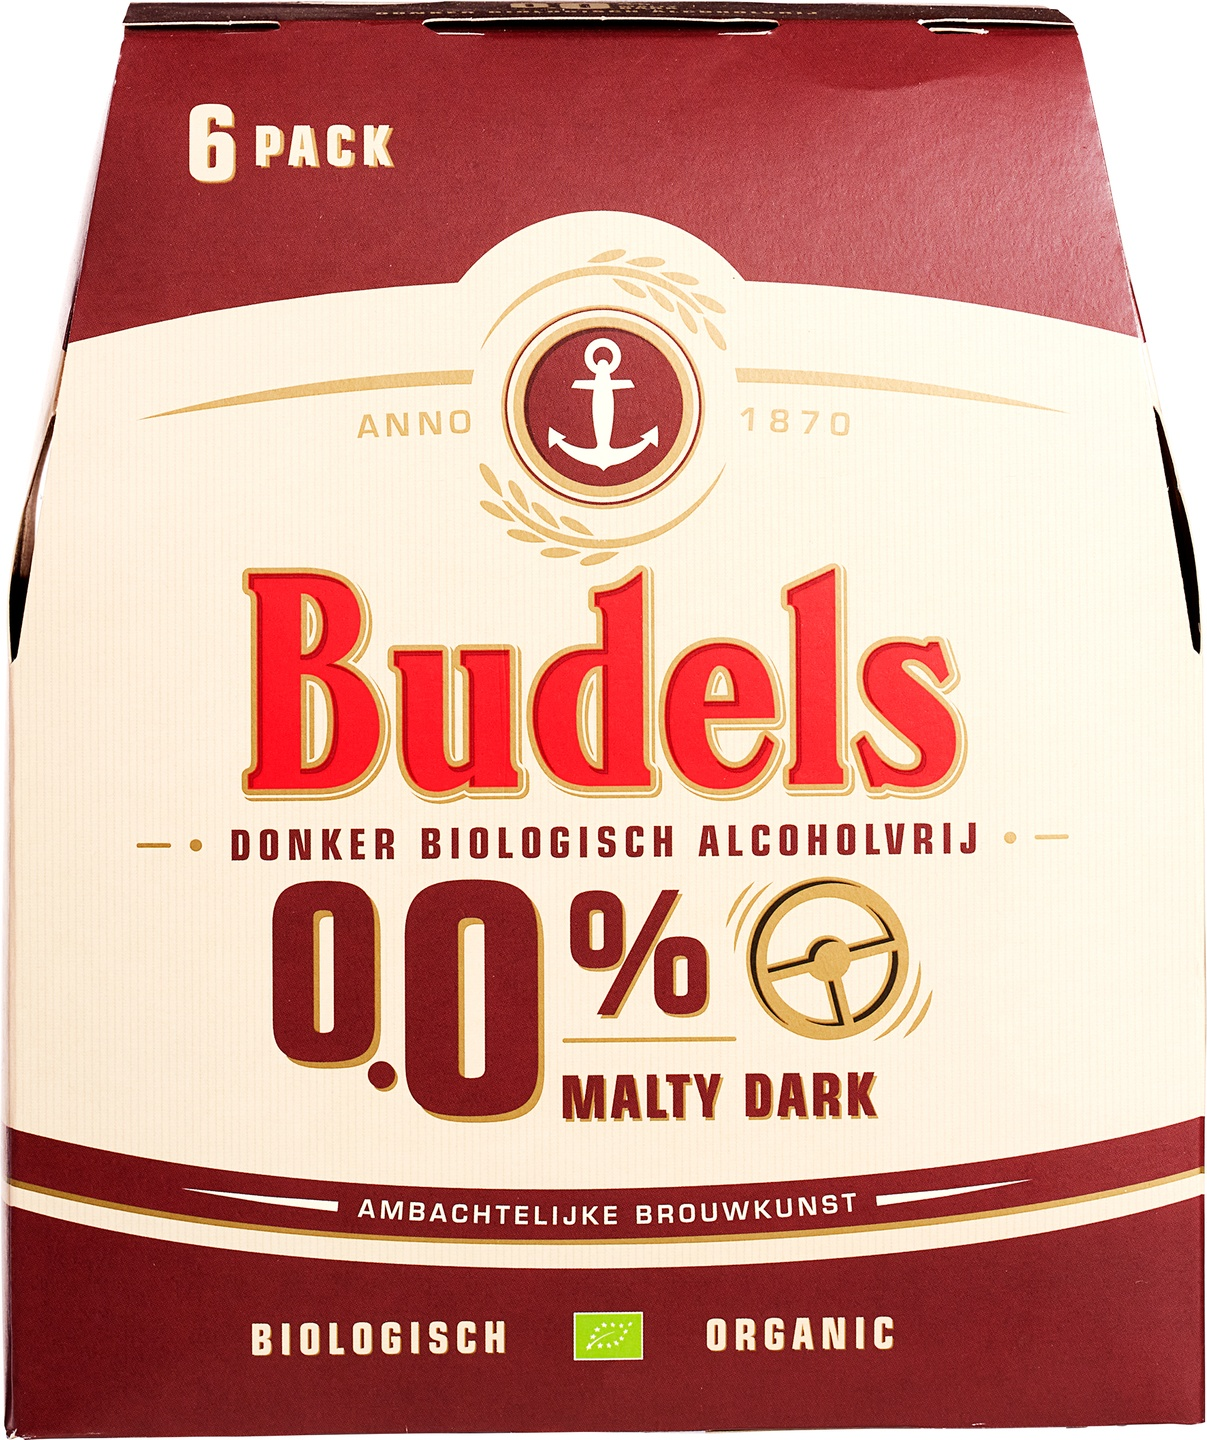 Biologische Budels Malty Dark 0,0% 6-pack 6 st